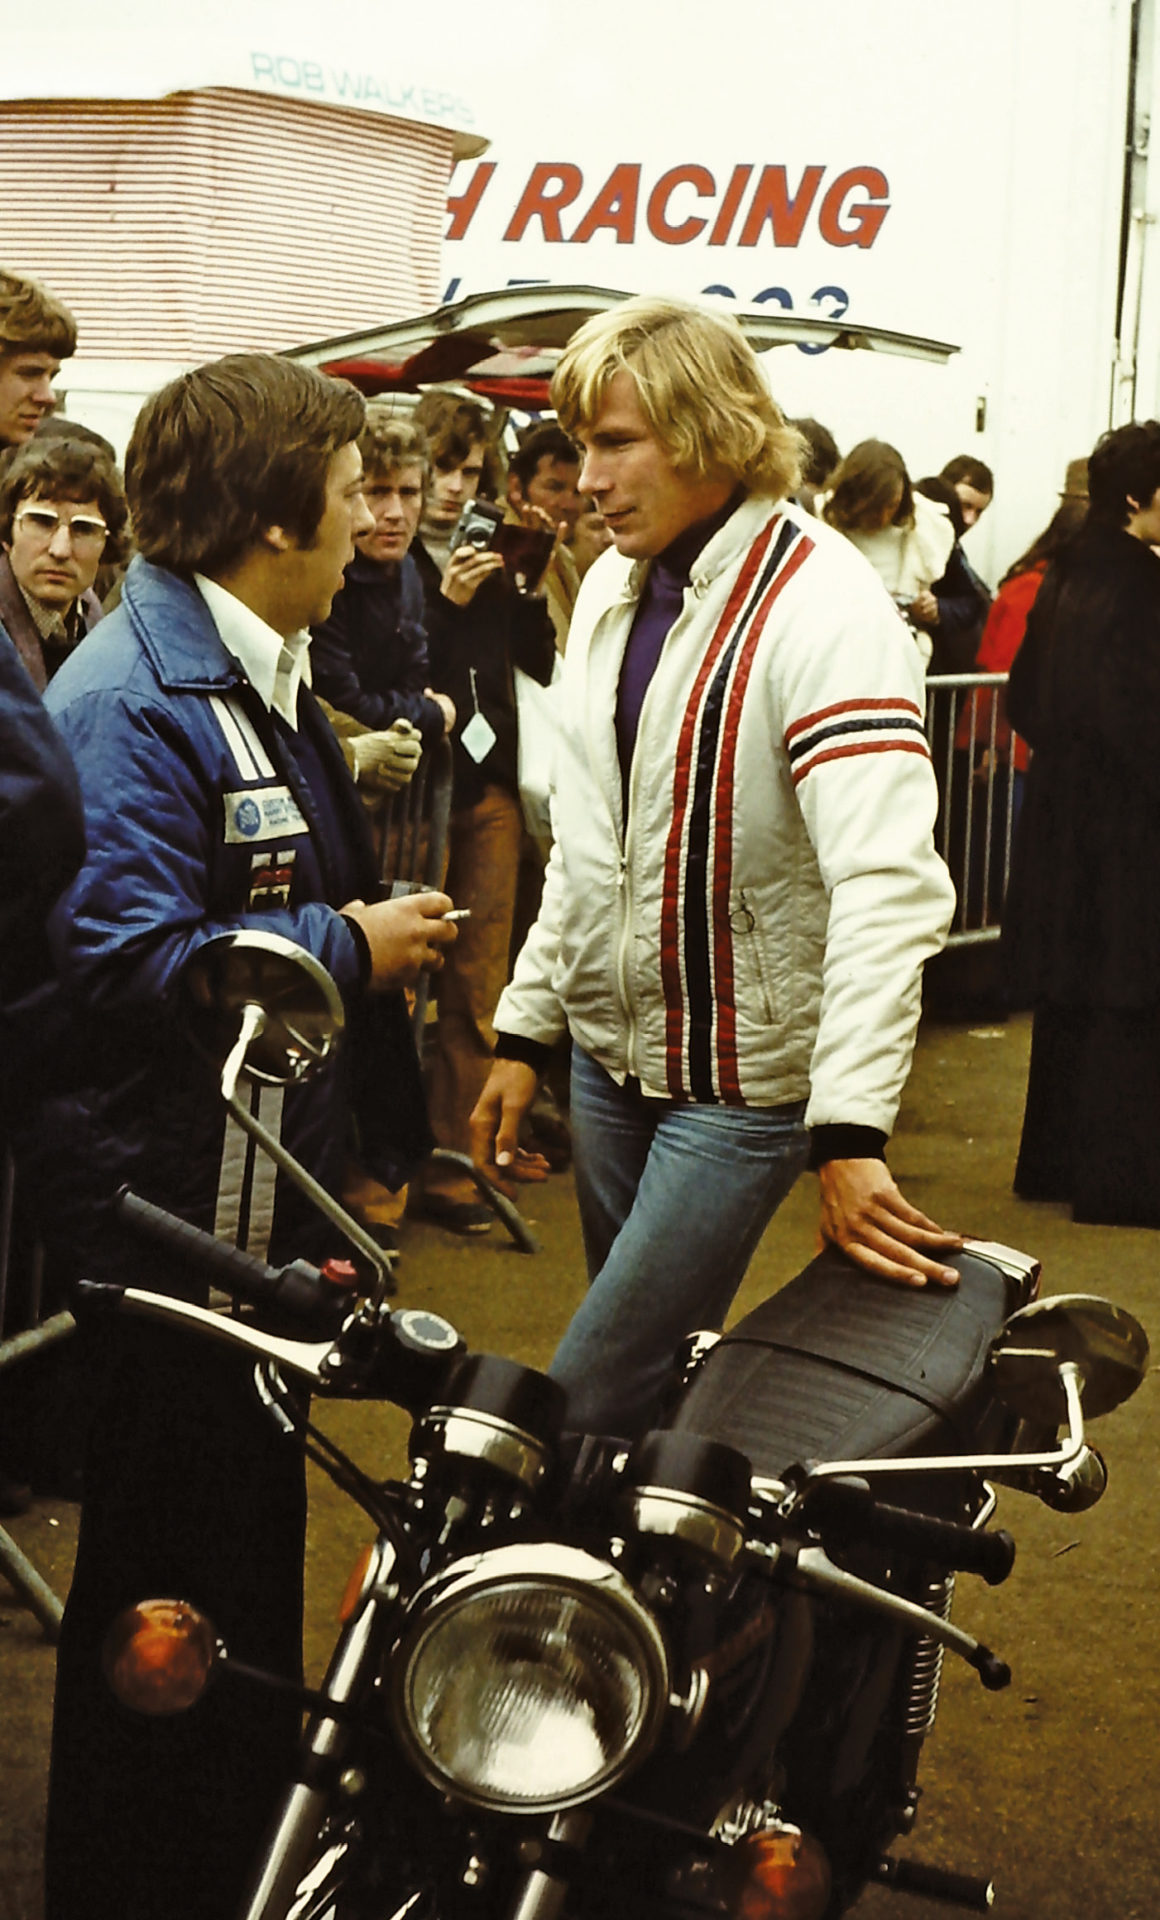 Hunt was an ambassador for Triumph motorcycles